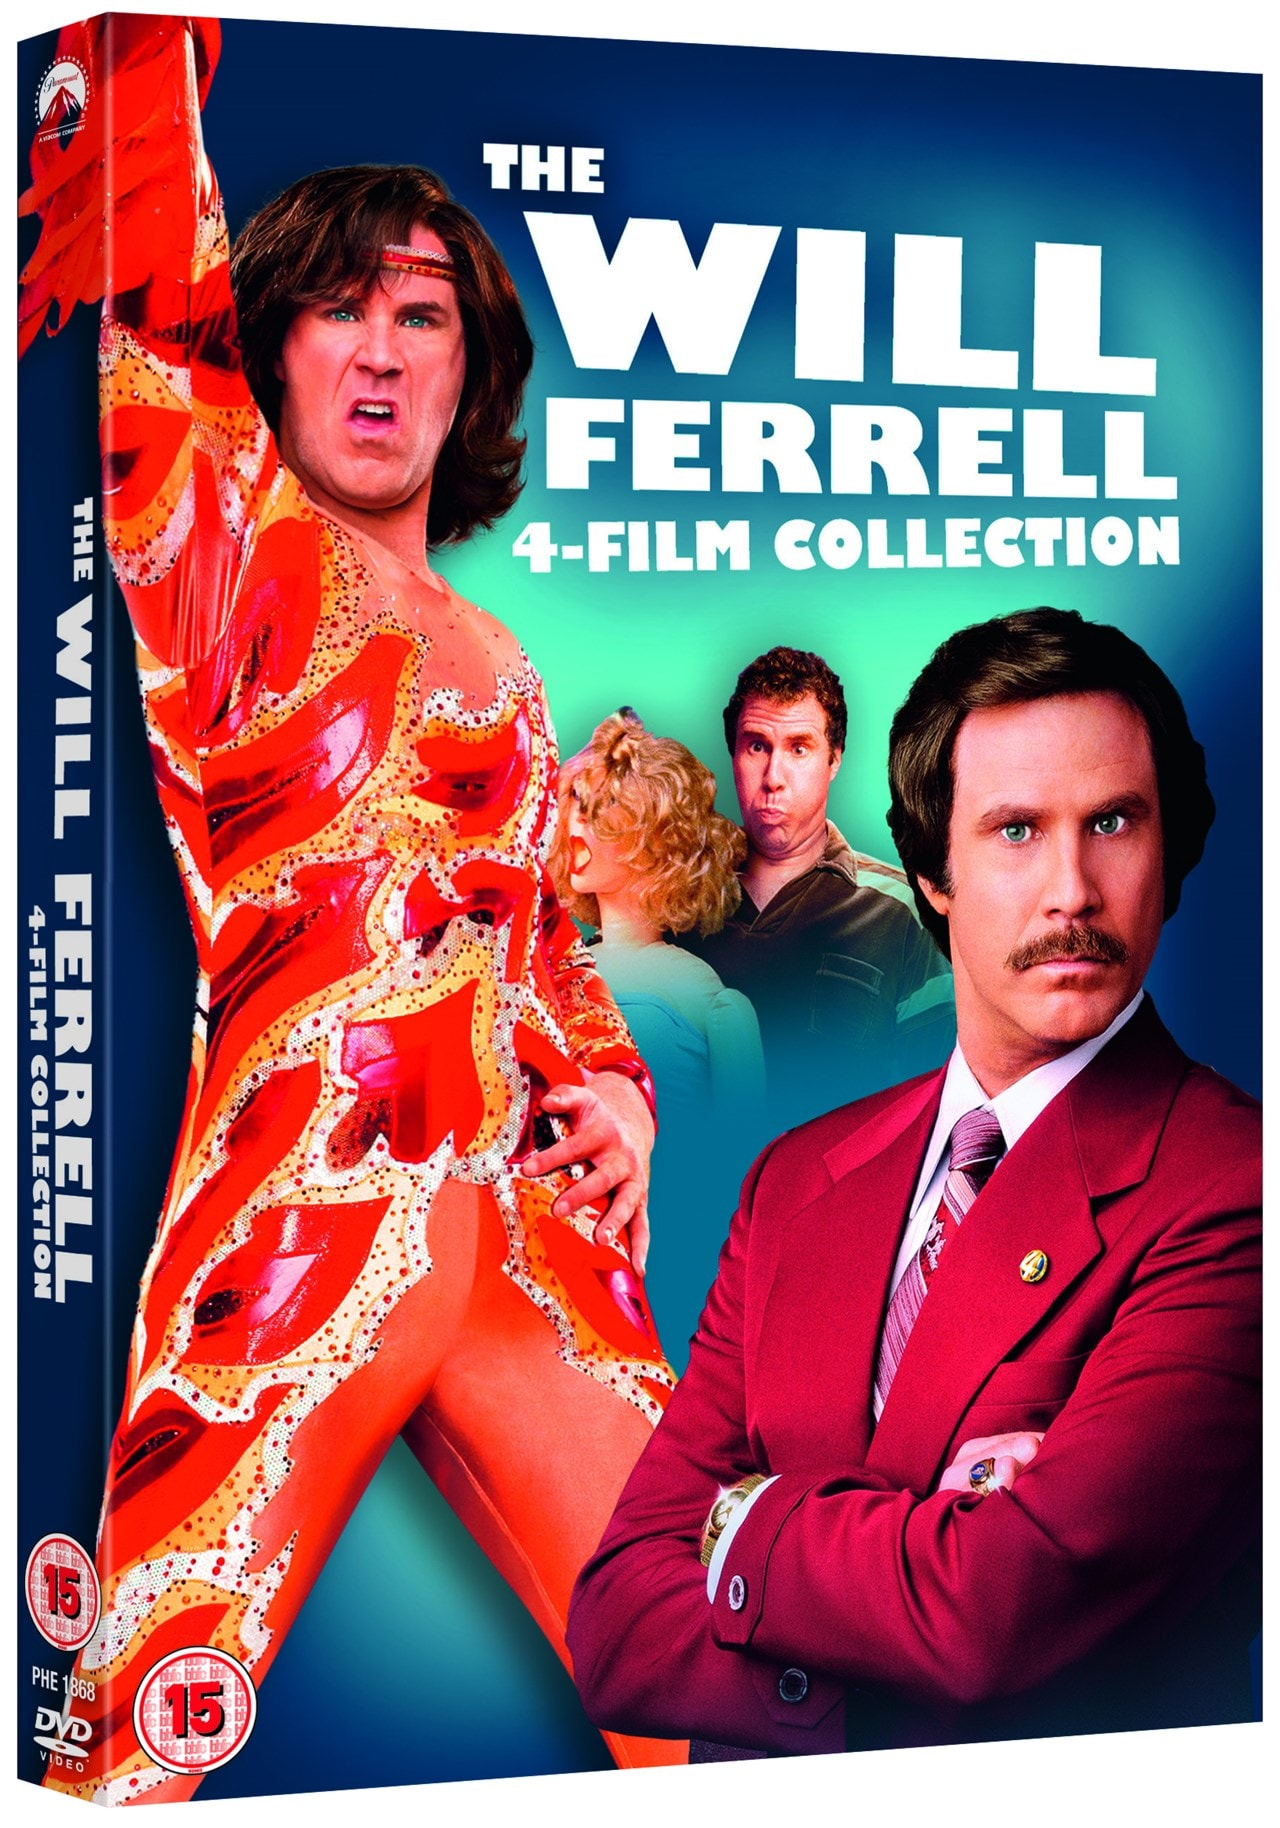 The Will Ferrell 4-film Collection - 2